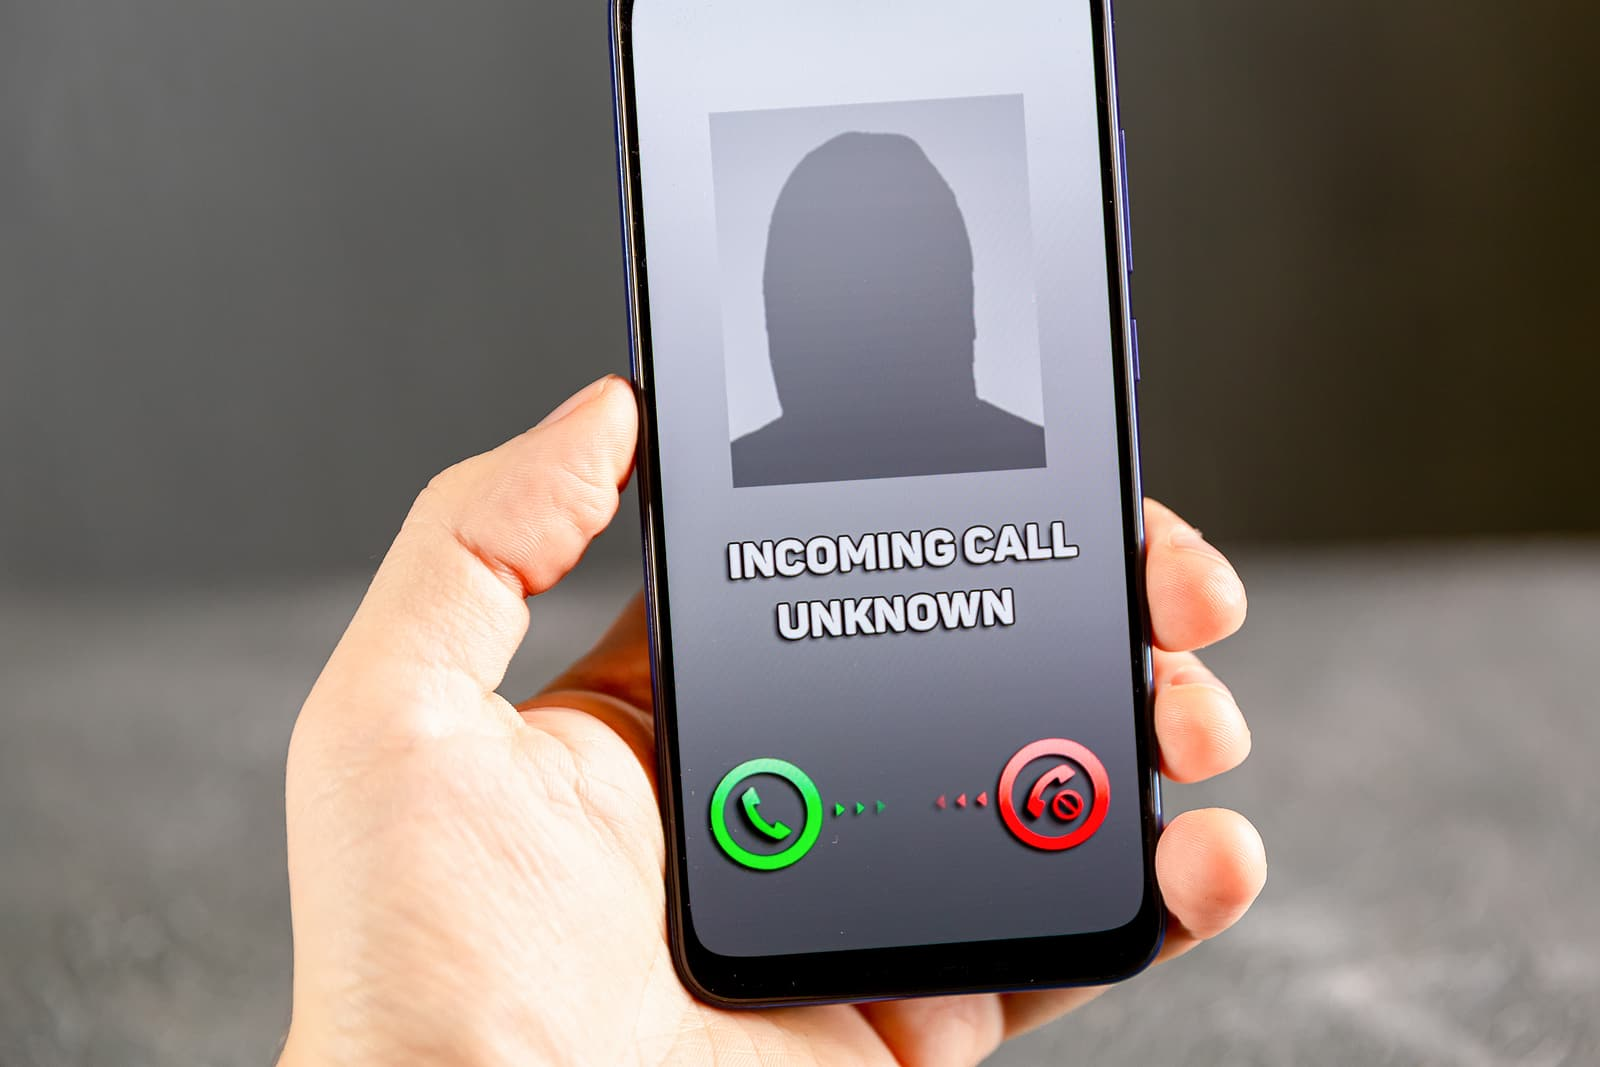 Phone call from unknown numbe - stimulus check scam